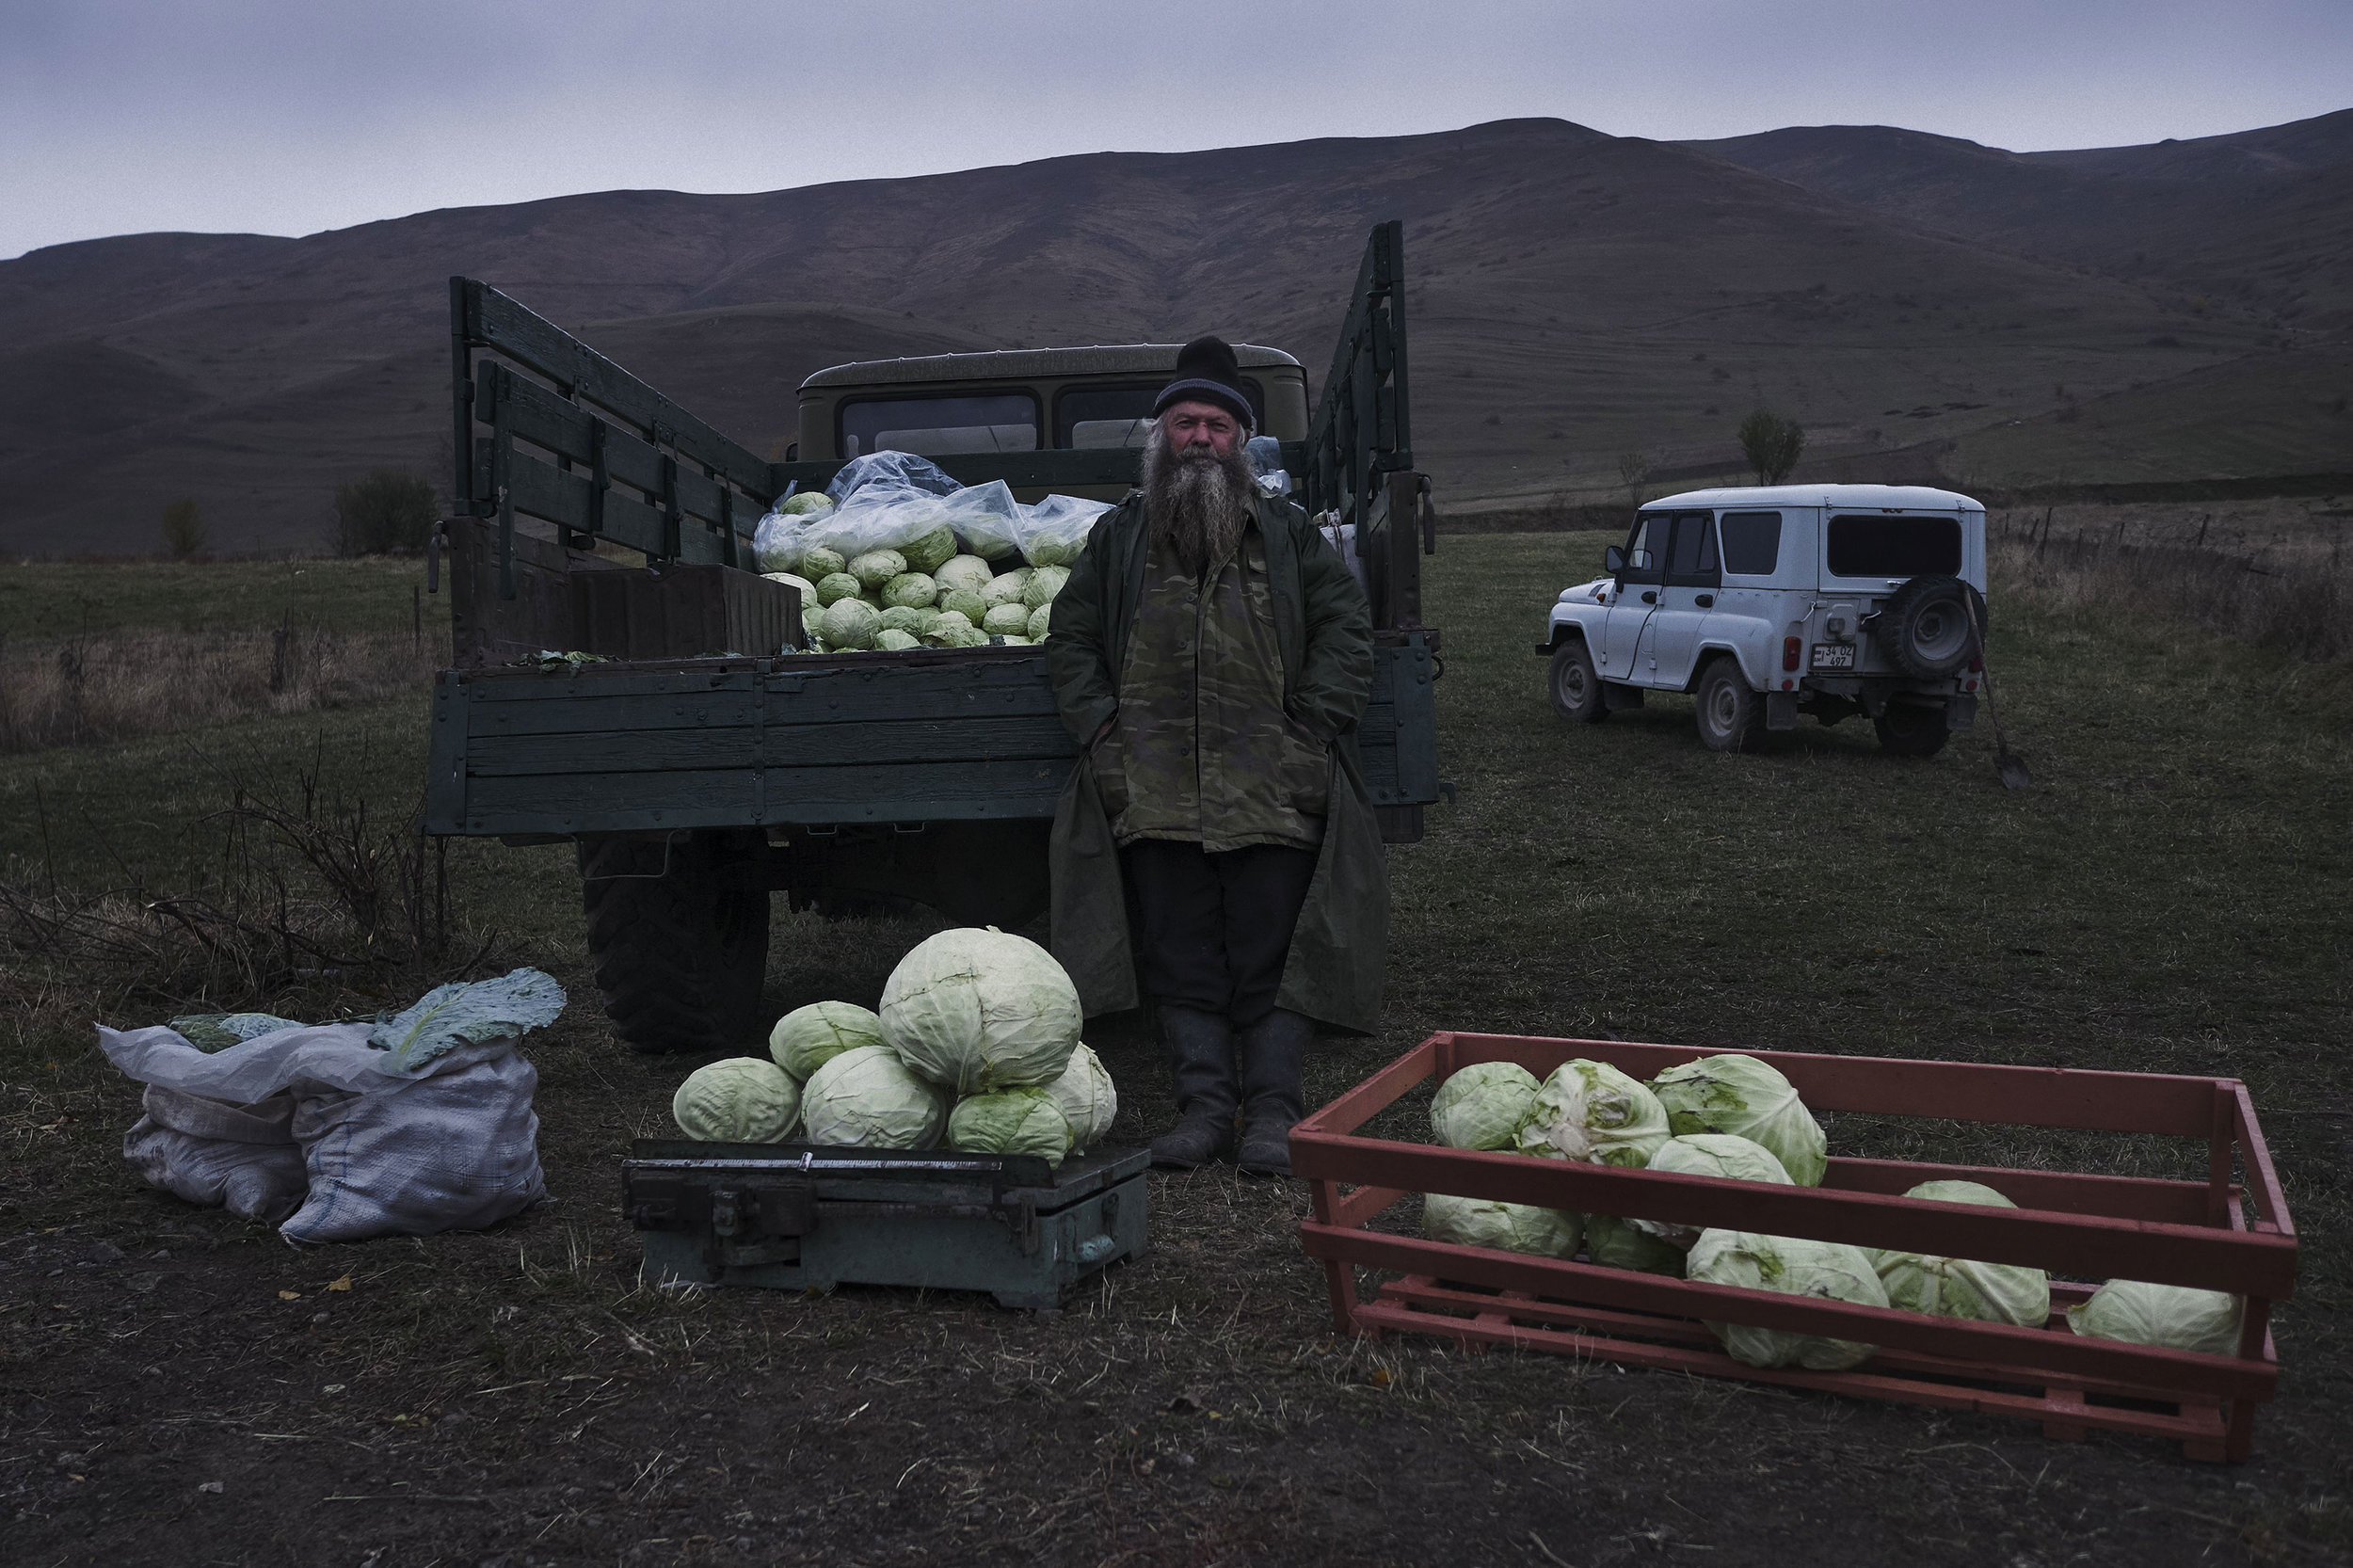 Cabbage seller molokan